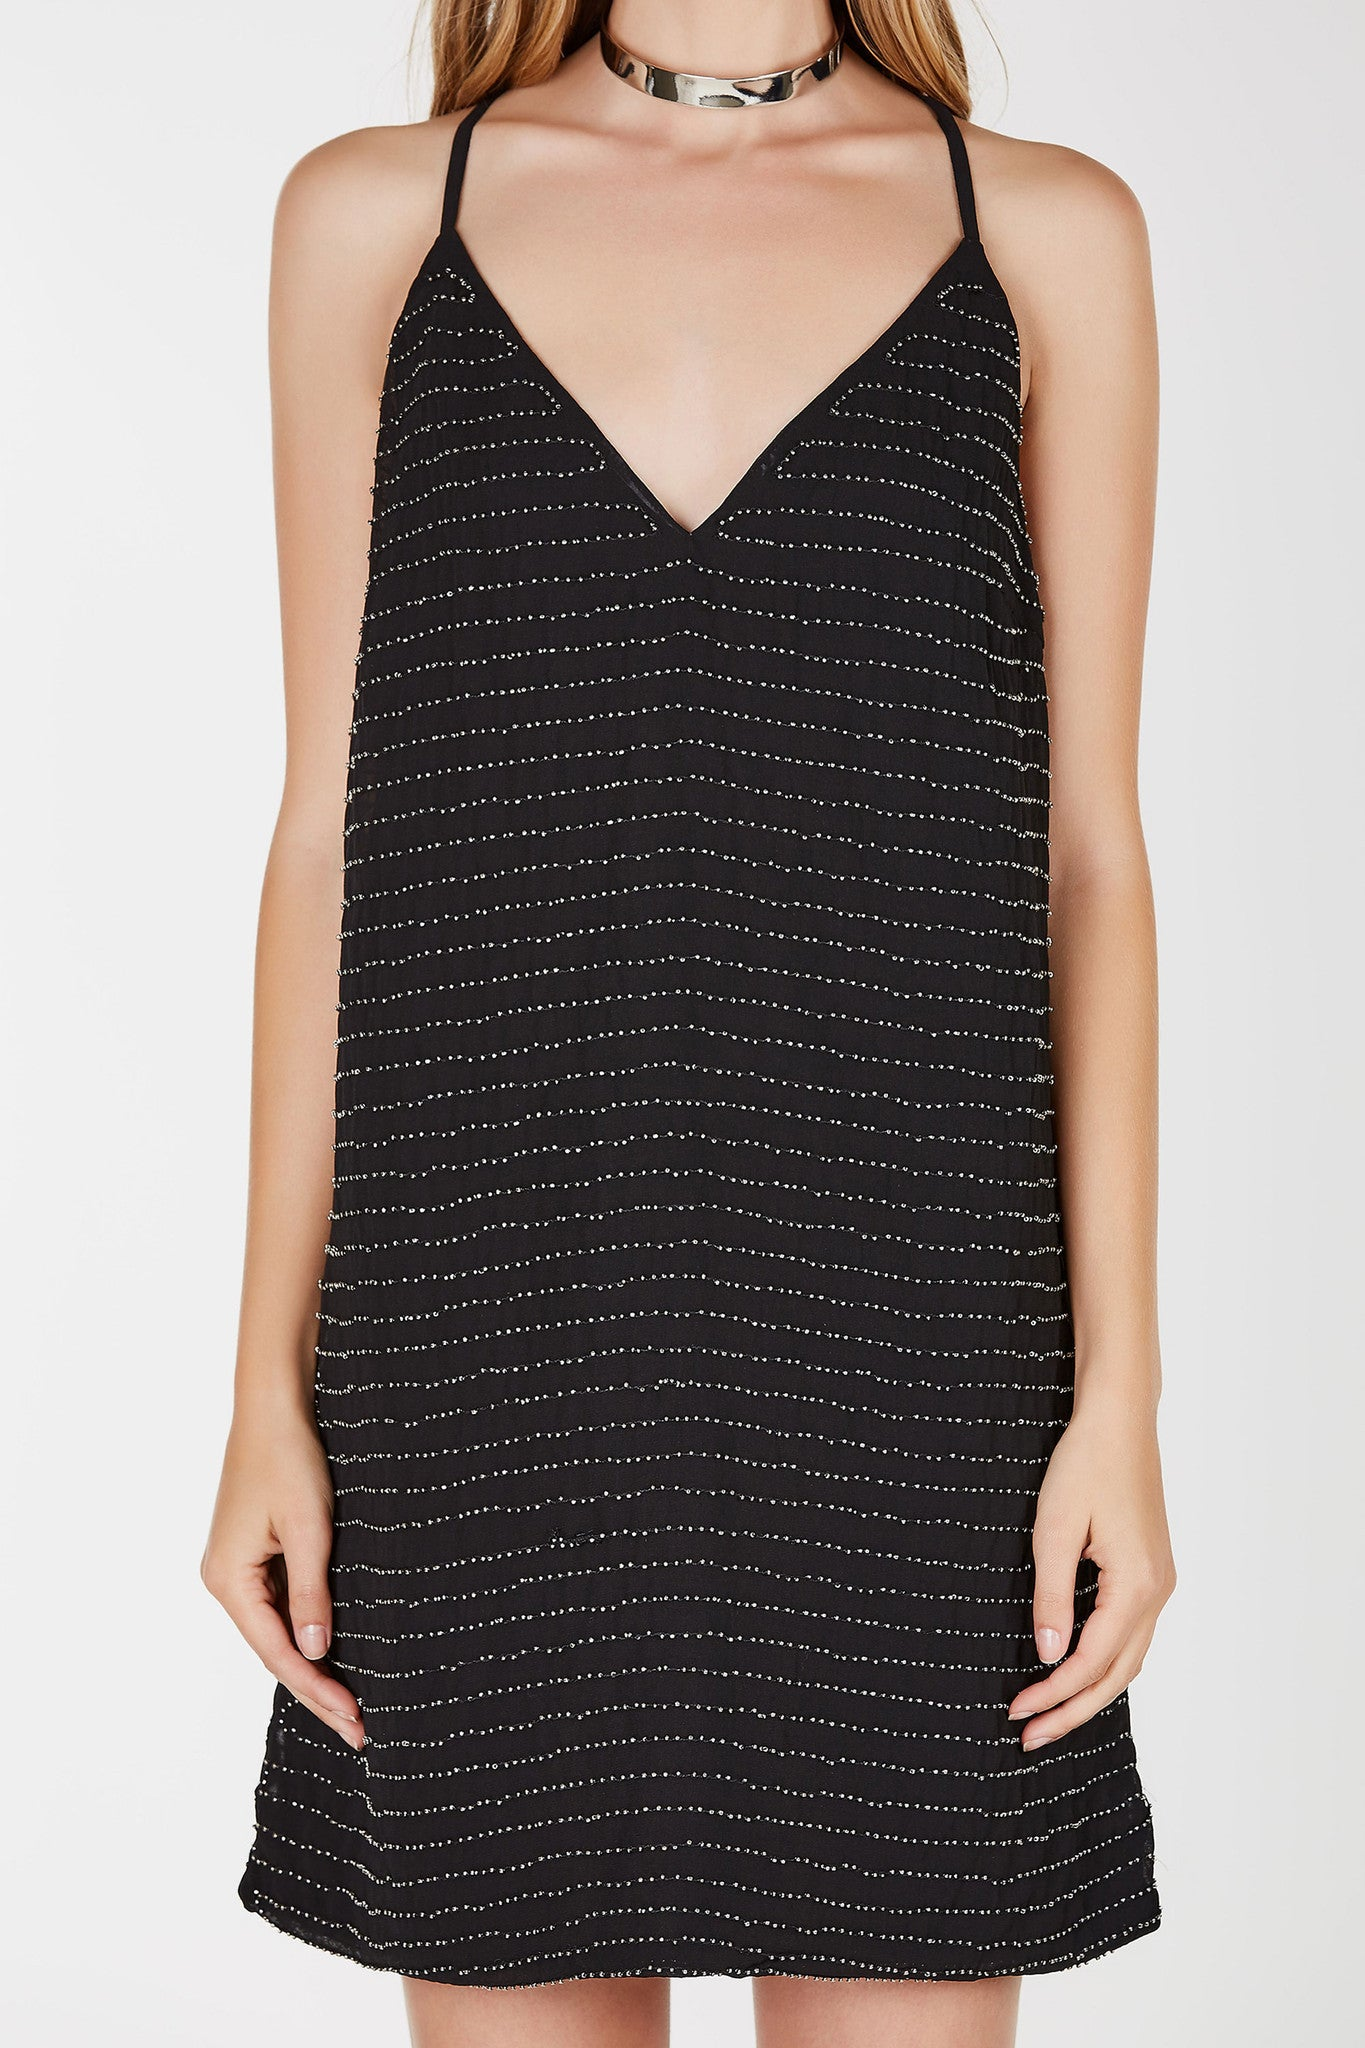 Relaxed fit cmi styled mini dress. Beaded design throughout. V-neckline with Y shaped finish in back.